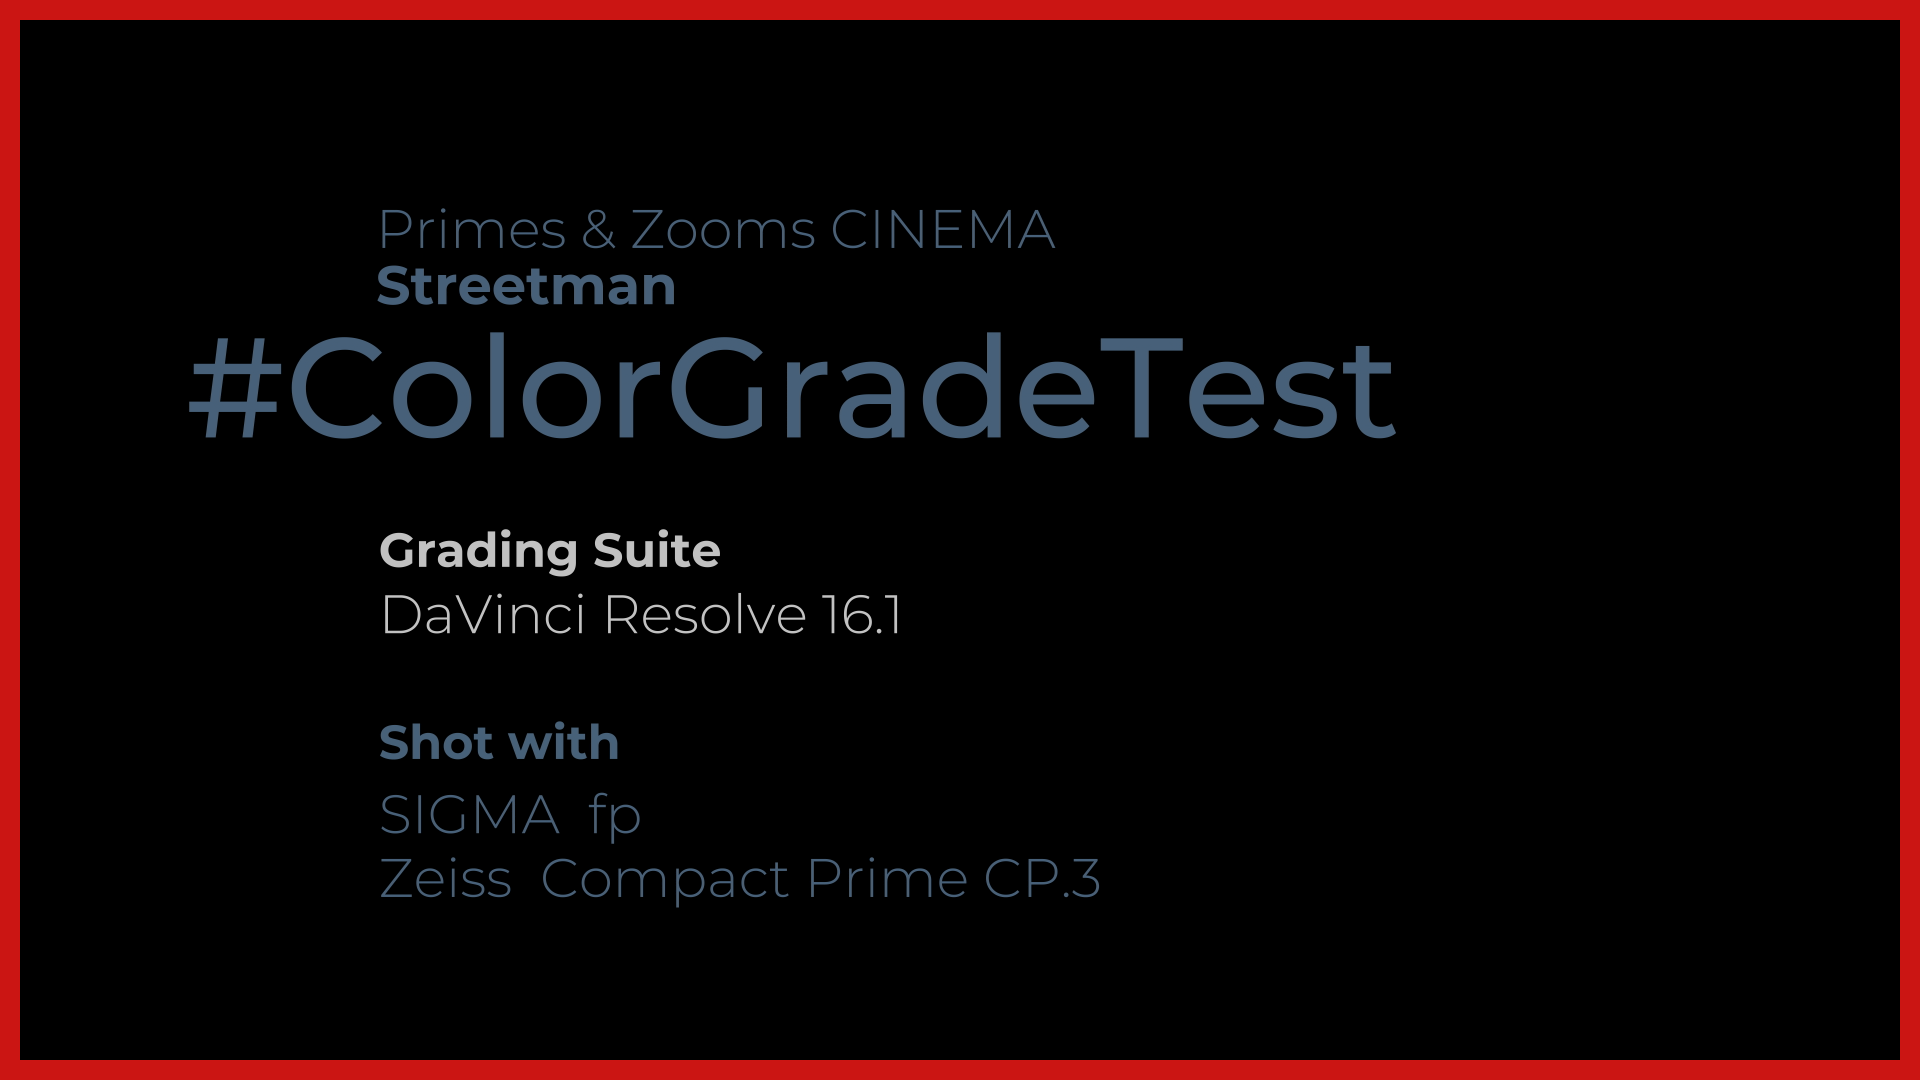 Primes and zooms Grade Test: street man